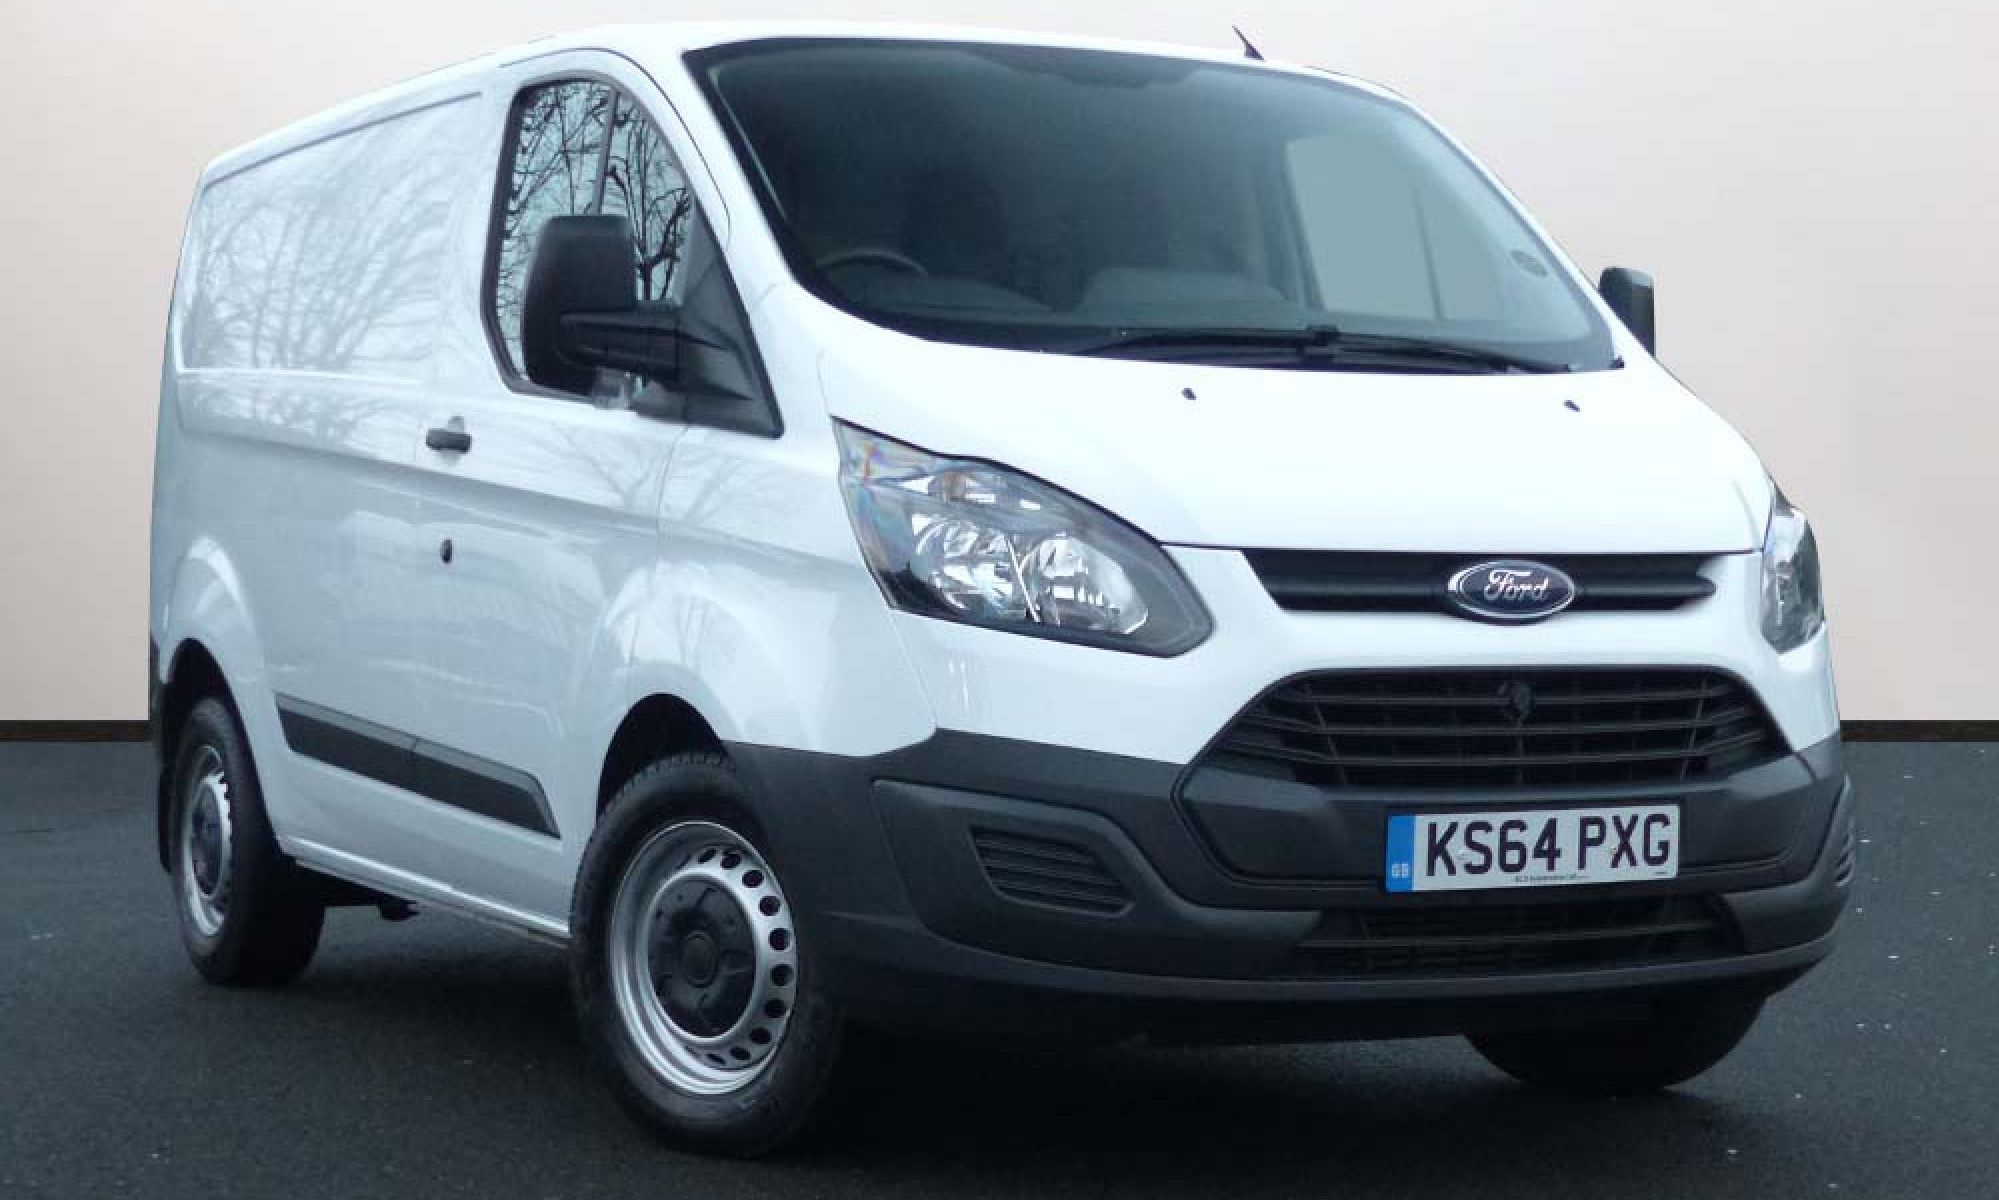 White Ford Transit Custom van parked three-quarters towards right  in front  of white wall